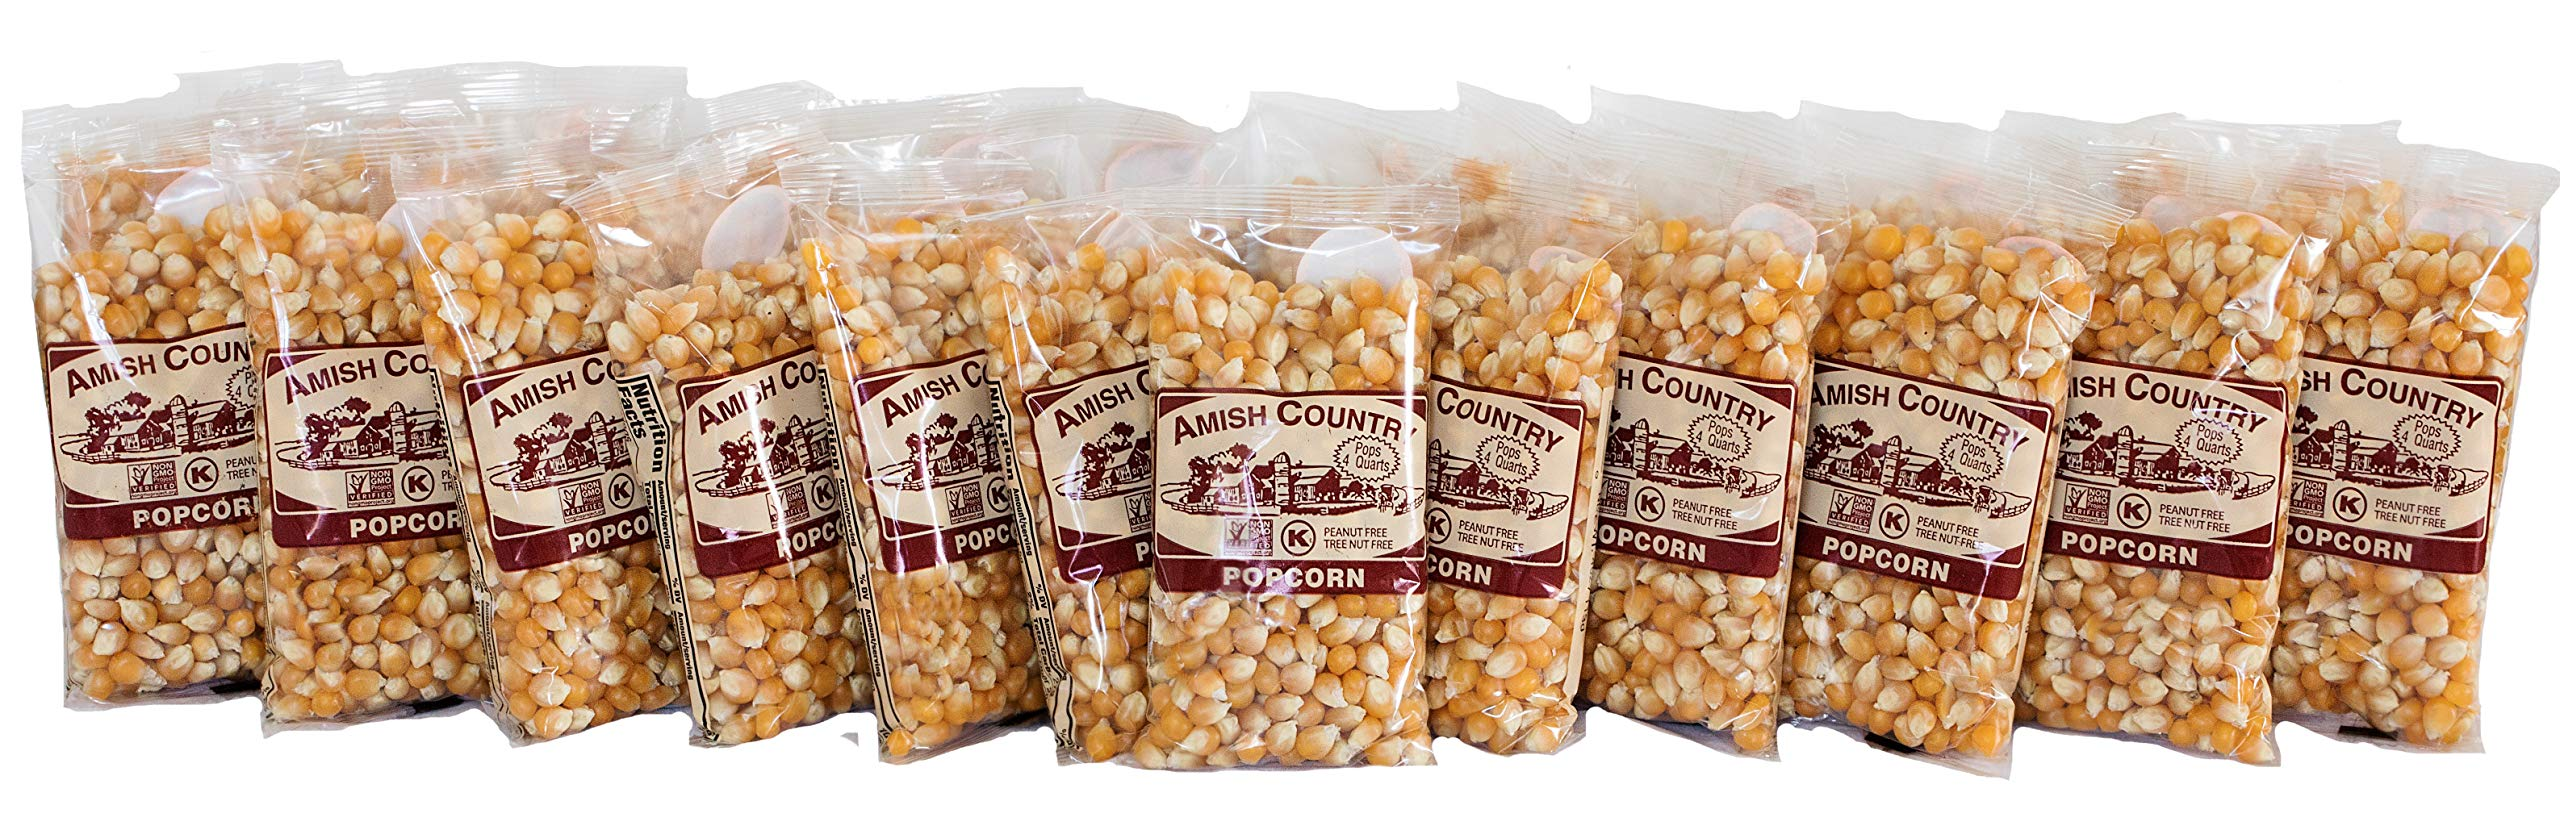 Amish Country Popcorn - Mushroom Popcorn (4 Ounce - 24 Pack) Bags - Old Fashioned, Non GMO, and Gluten Free - with Recipe Guide